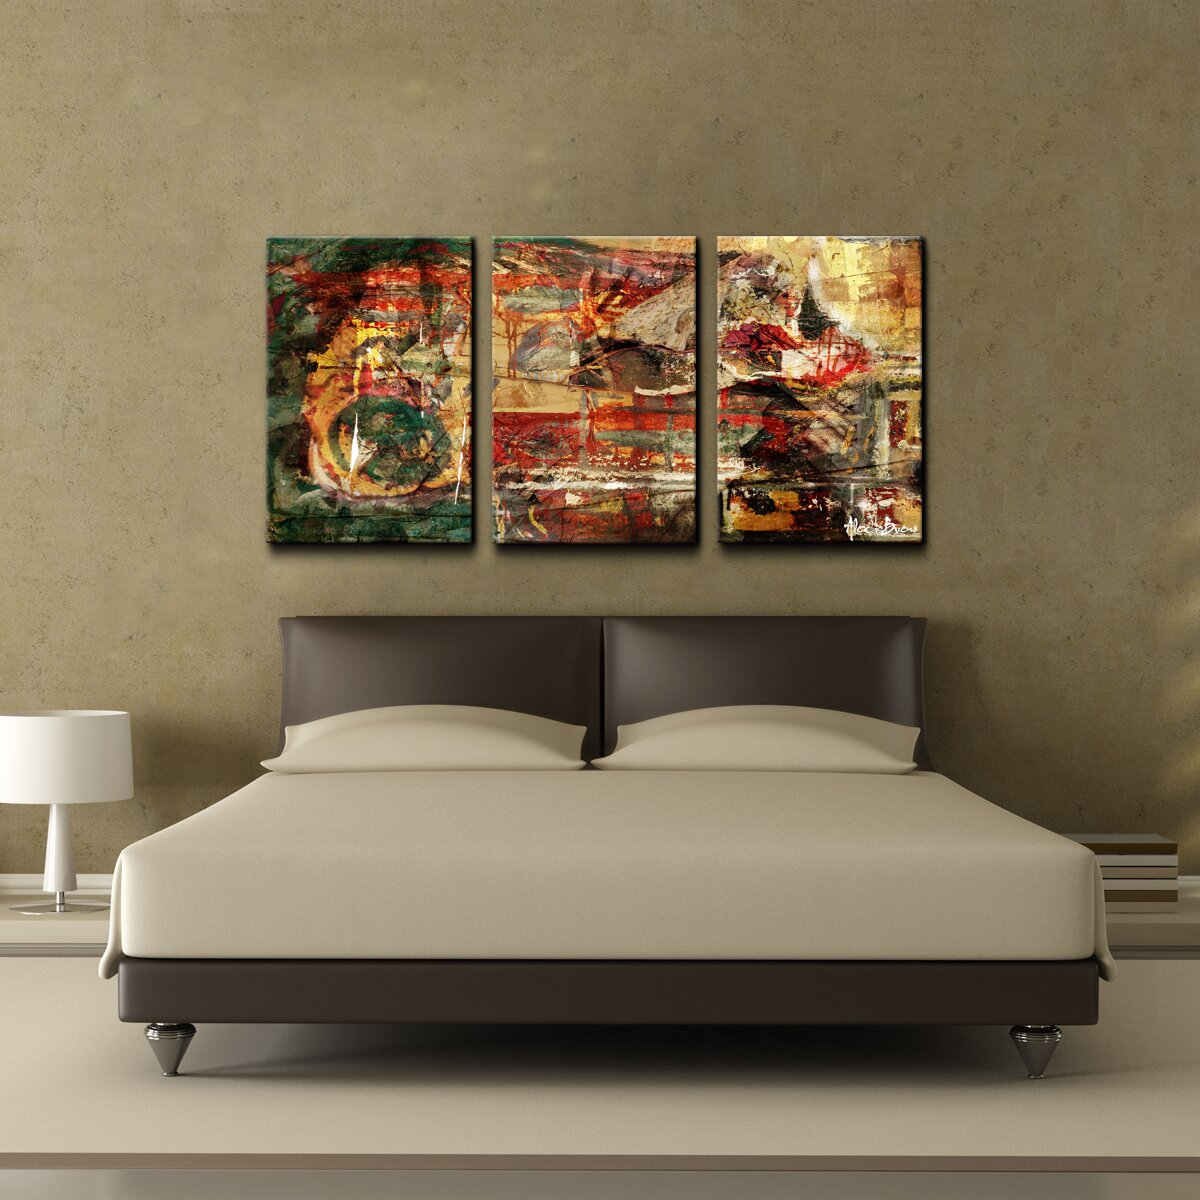 Ready2hangart oversized abstract 3 piece canvas wall art for Ready set decor reviews